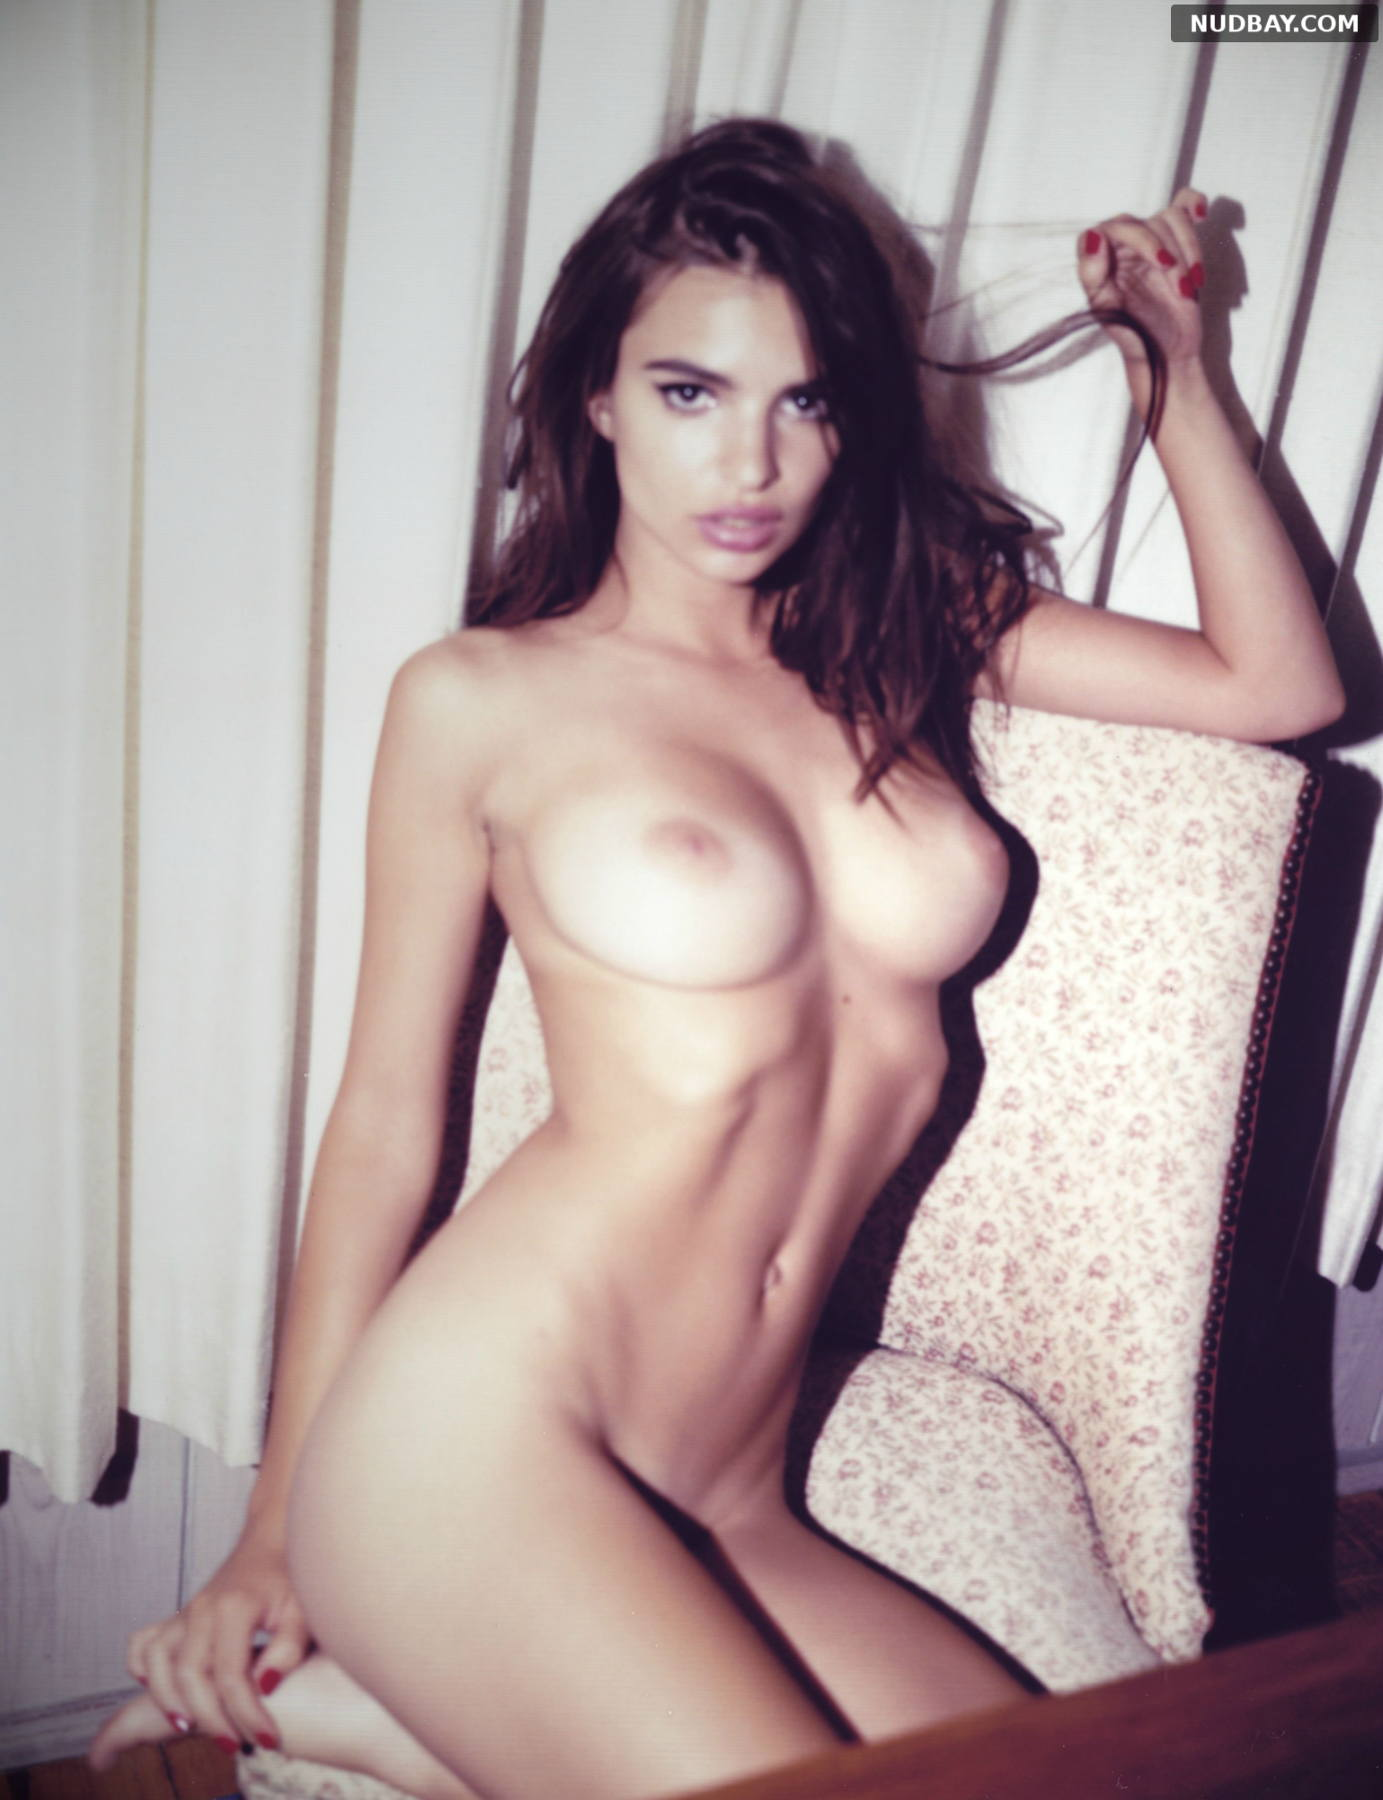 Emily Ratajkowski showed off her huge tits without panties 2021